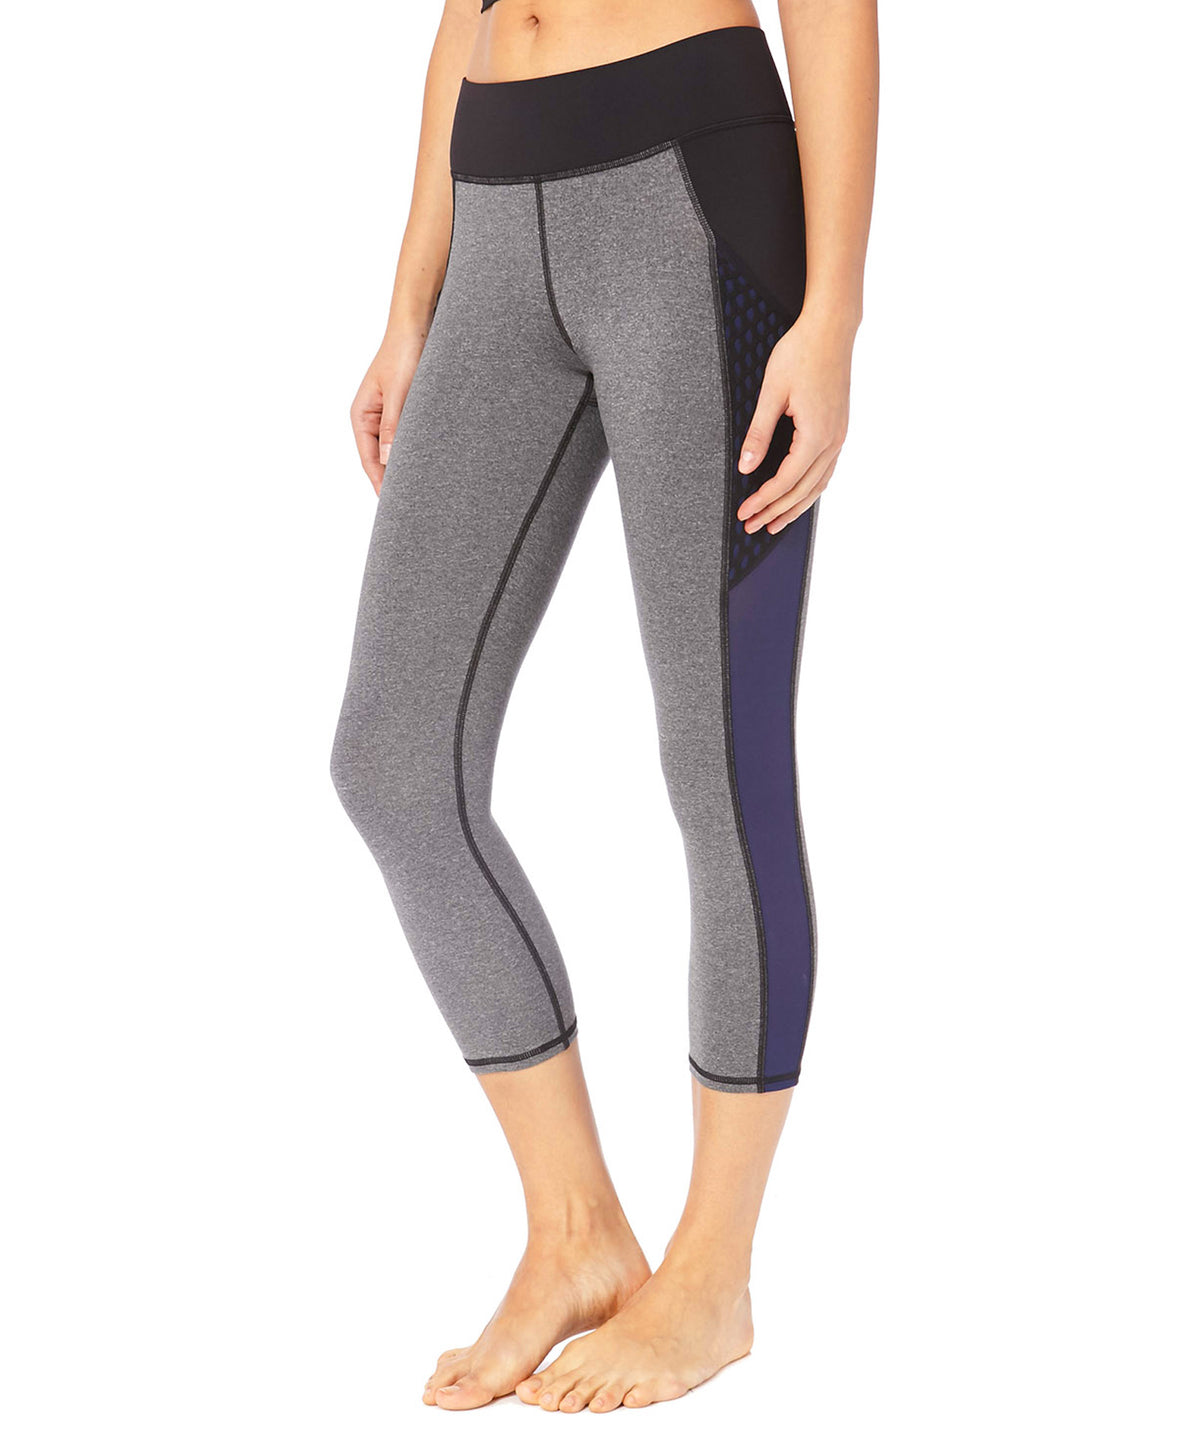 Michi Nyc Stardust Women Grey Leggings